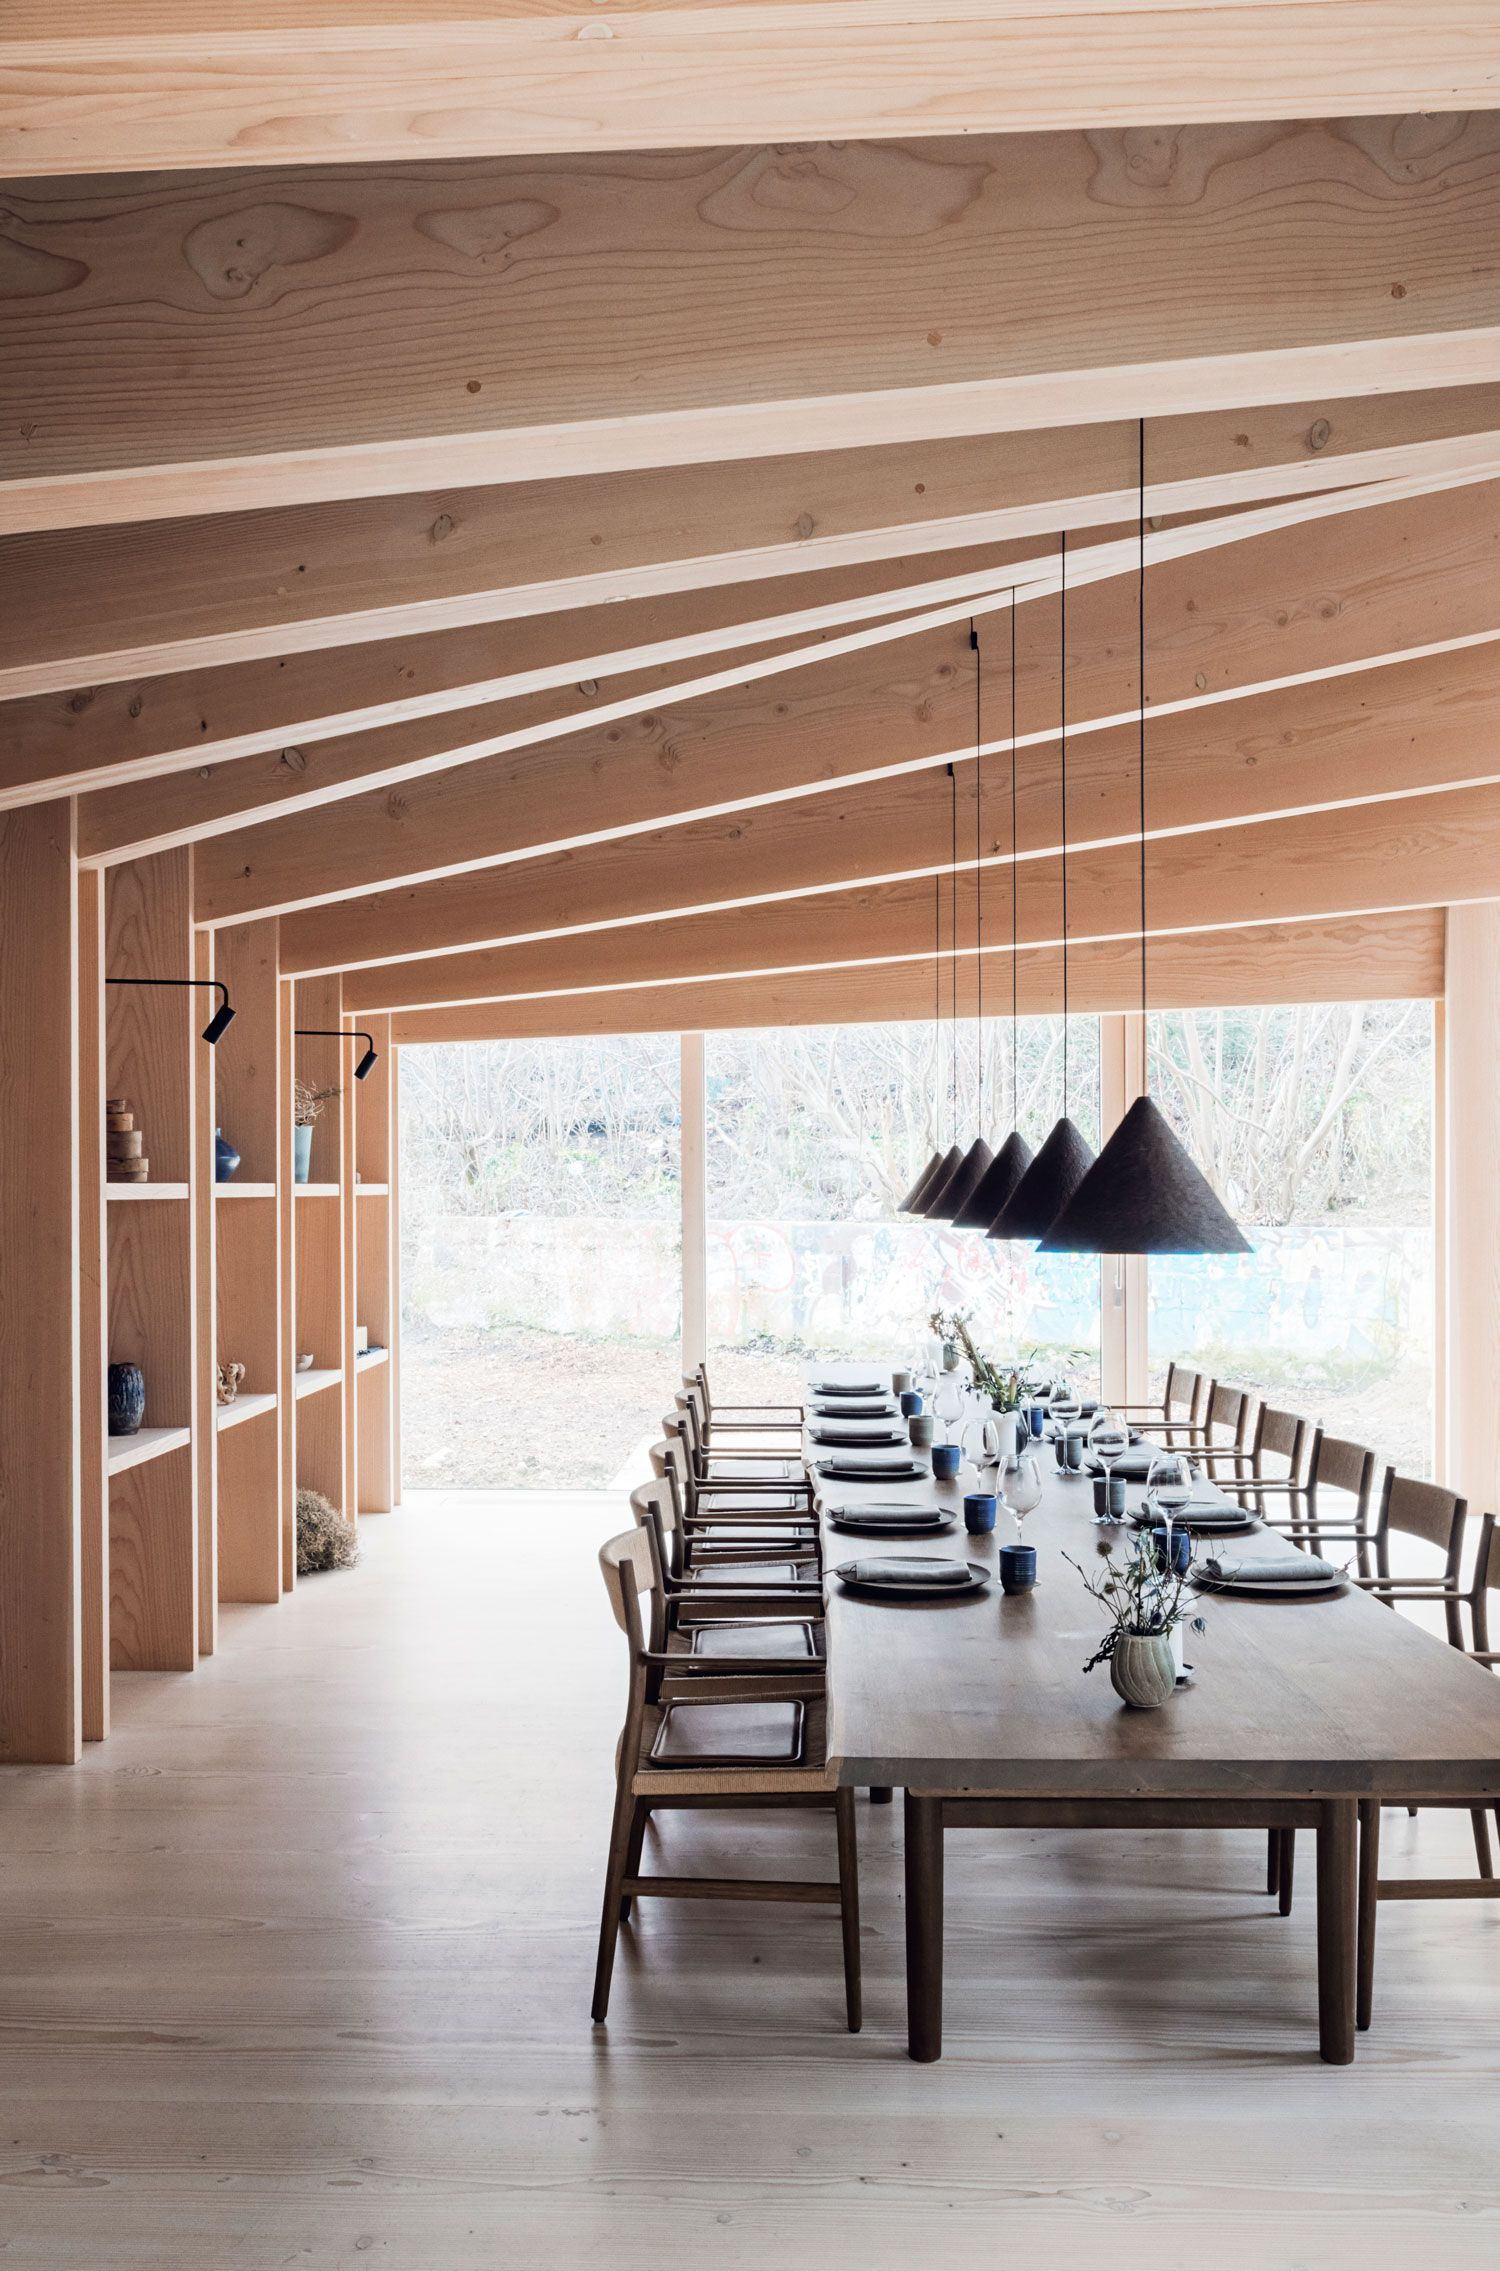 Noma Restaurant In Copenhagen By Studio Thulstrup With Images